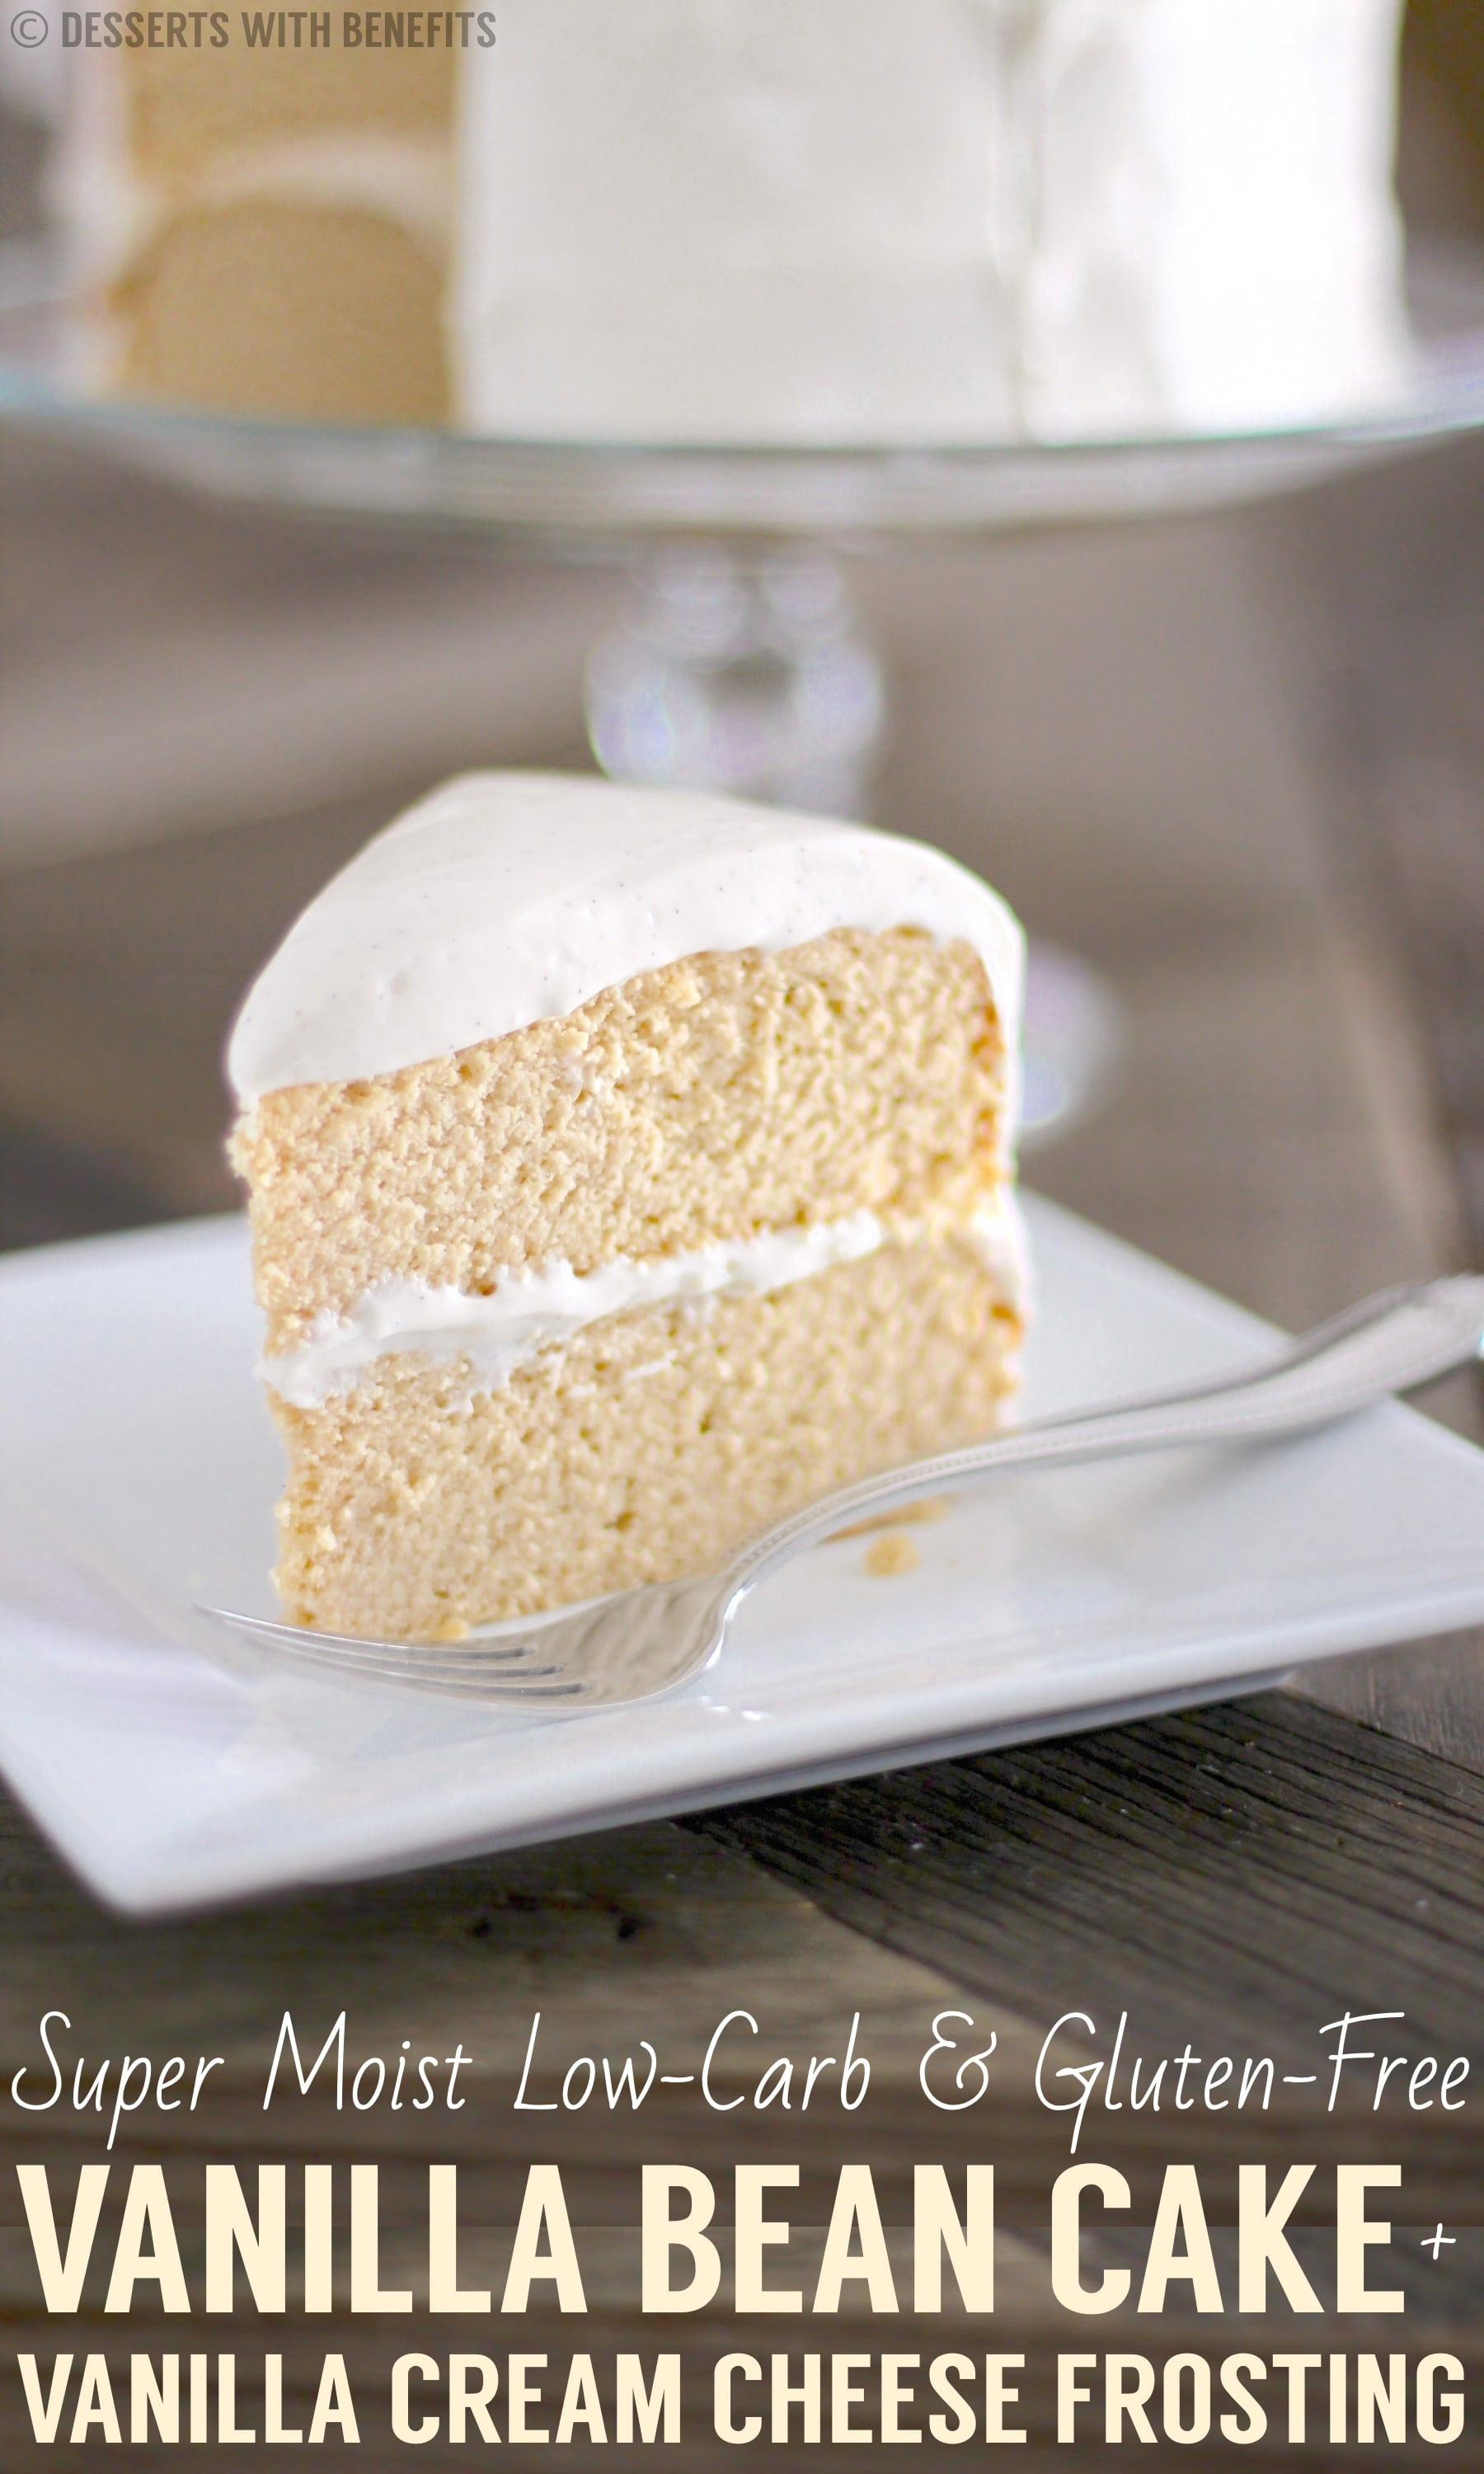 Low Carb Dairy Free Desserts  The lightest fluffiest Gluten Free Vanilla Cake Recipe